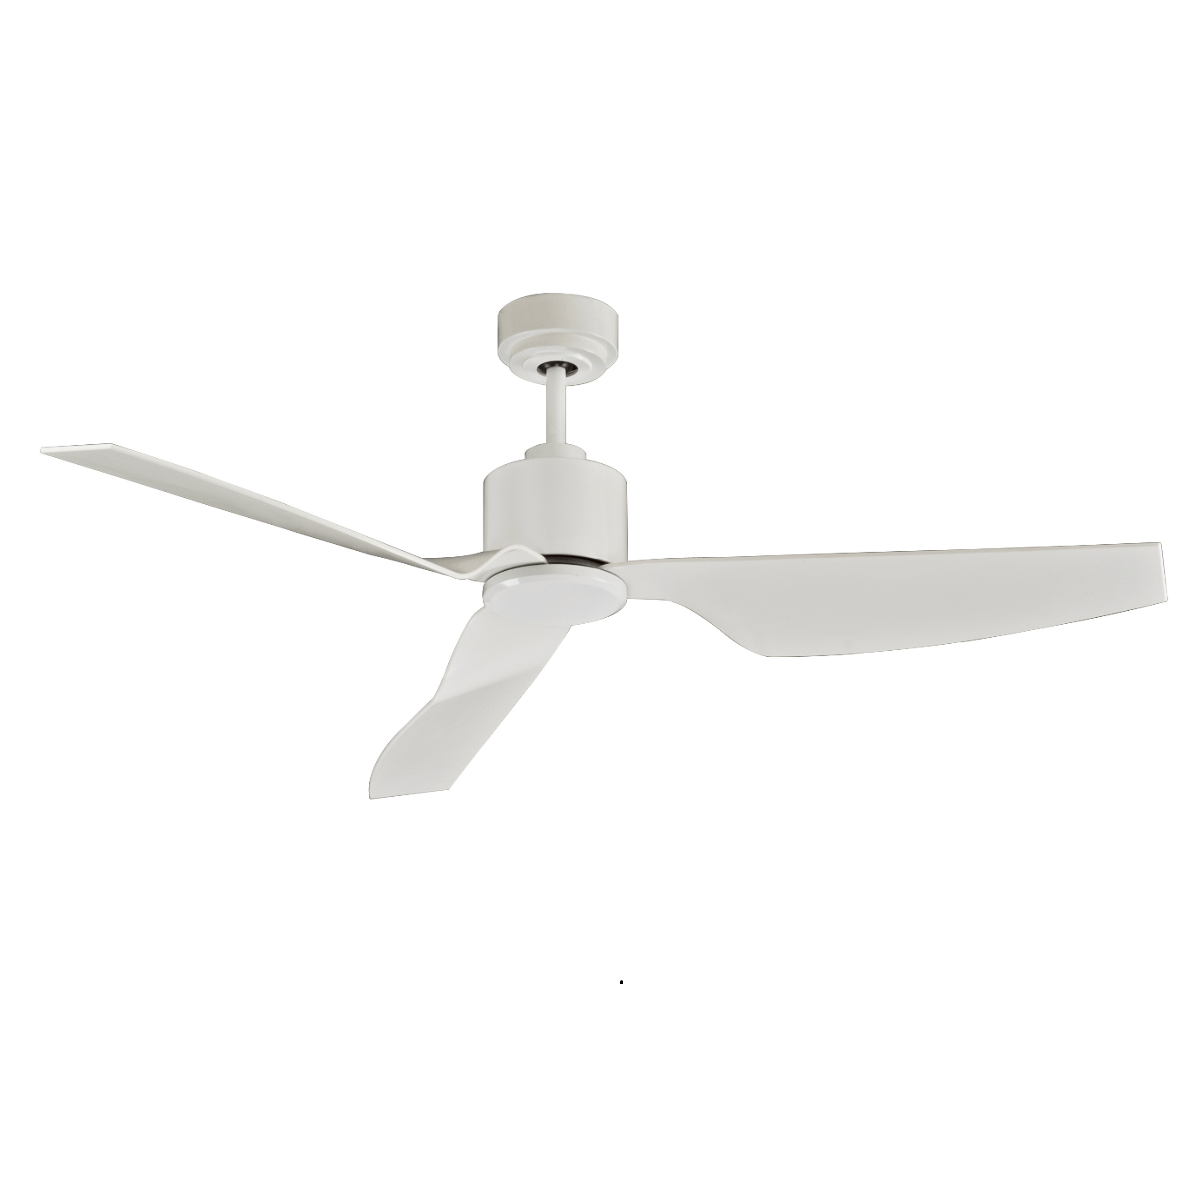 Stropný ventilátor Lucci Air Airfusion Climate II 210528